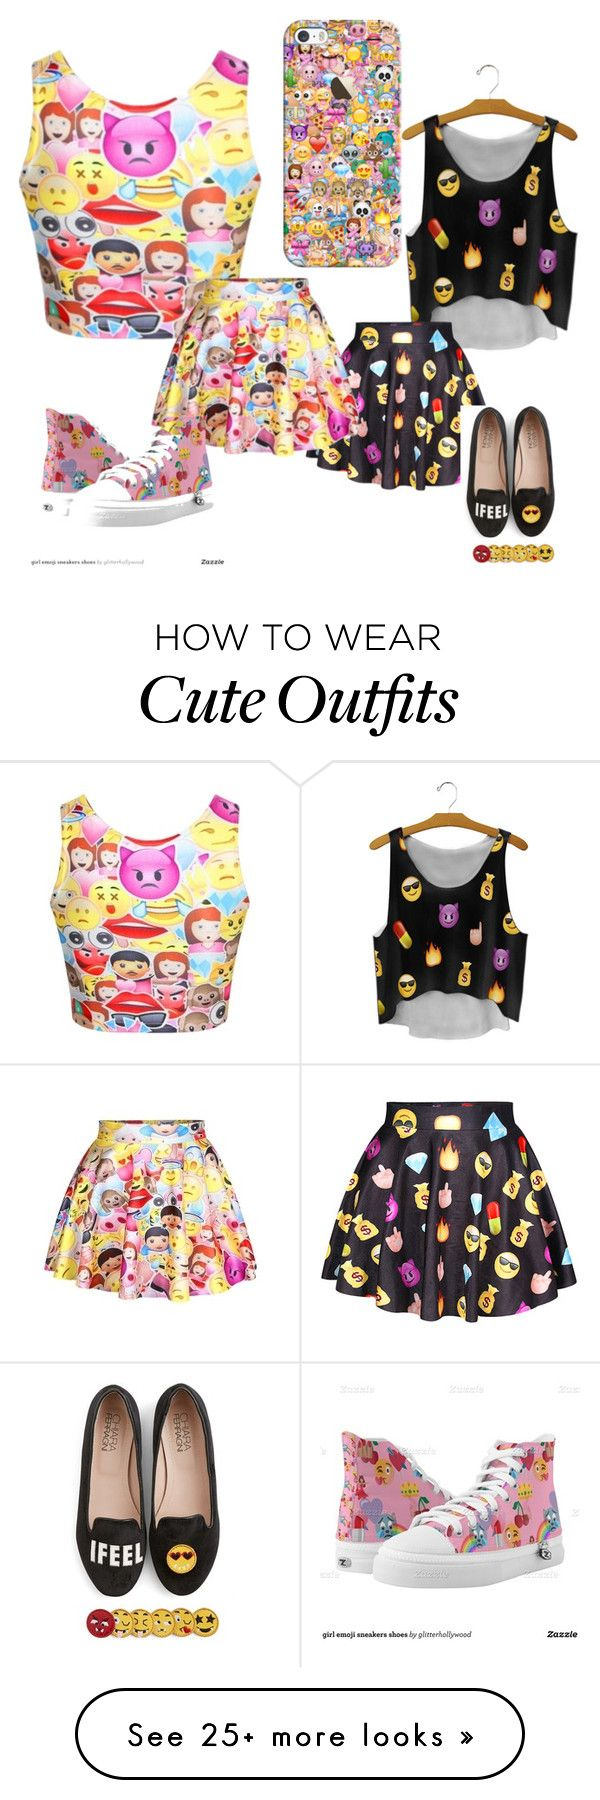 """Emoji Outfit"" by cutesheepcat on Polyvore featuring Chiara Ferragni, Casetify and emoji"